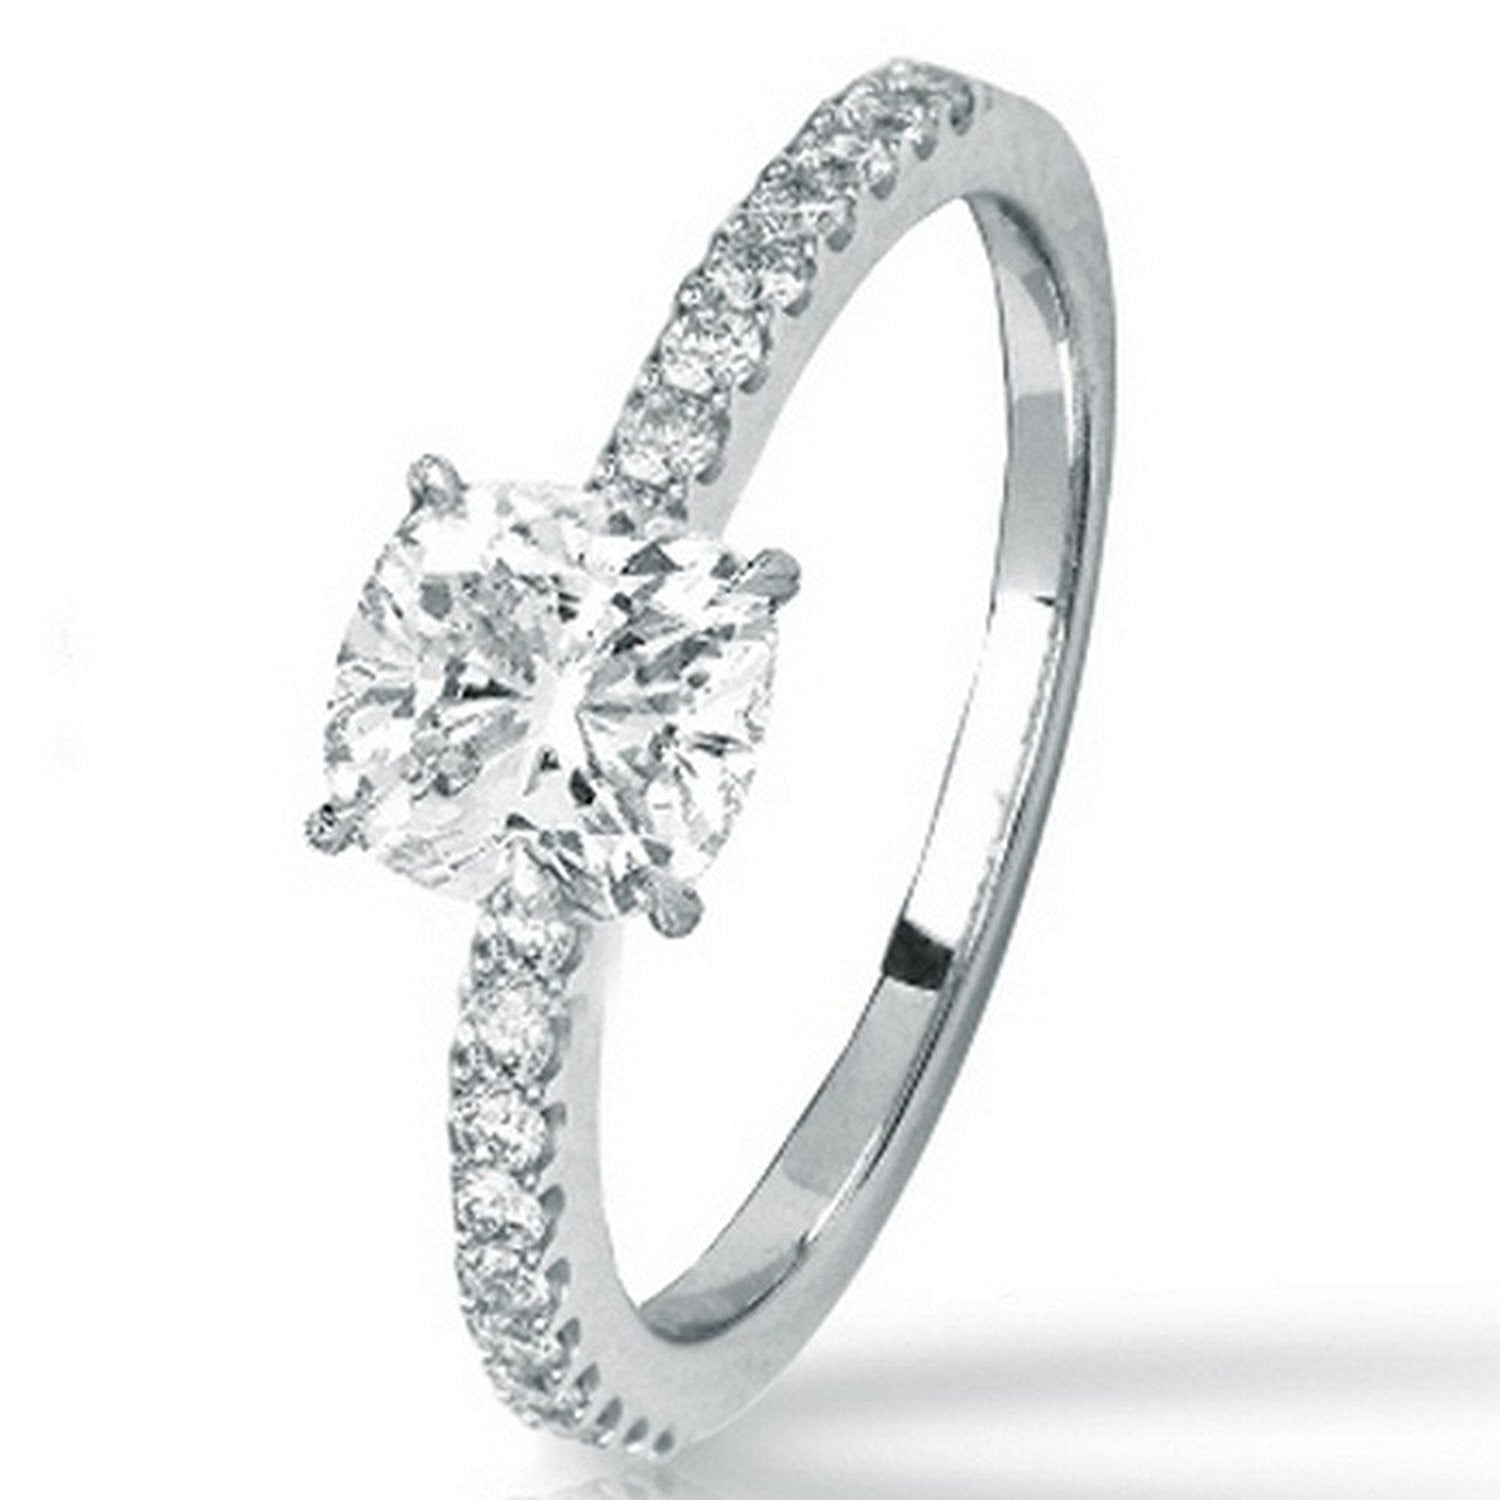 shop only diamonds j carat color clarity round white com cut brilliant diamond goldinart i